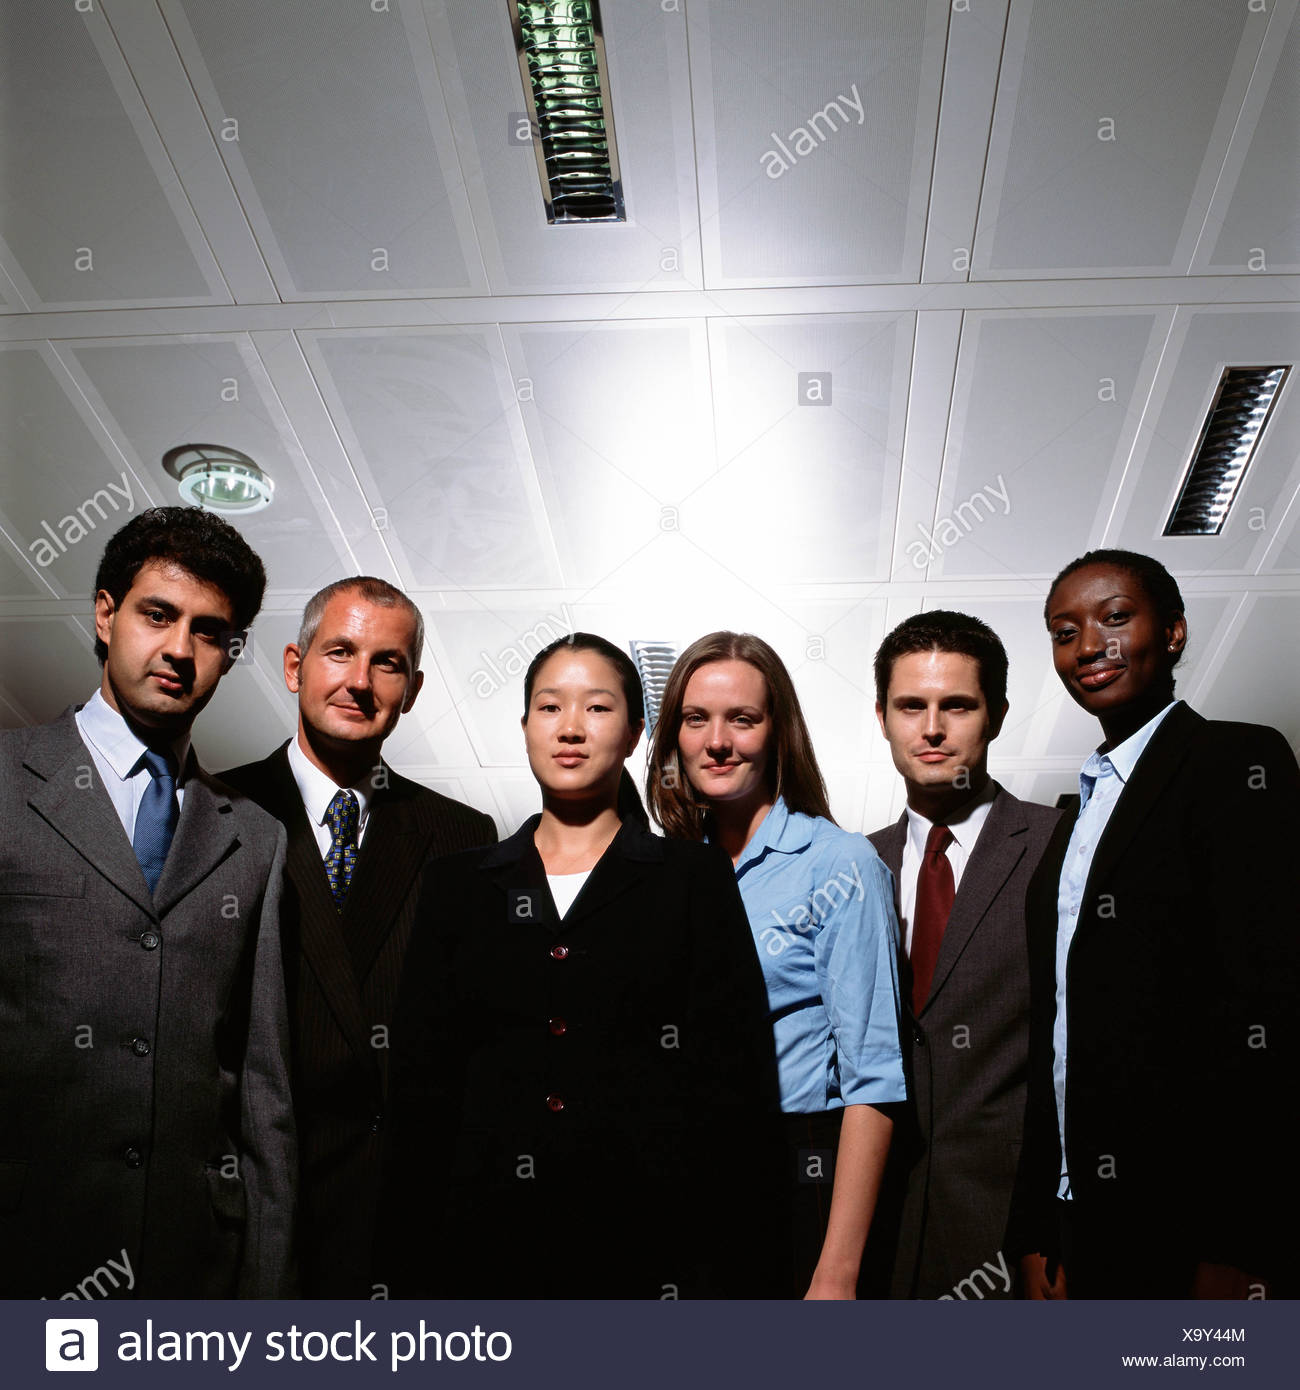 Staff members - Stock Image